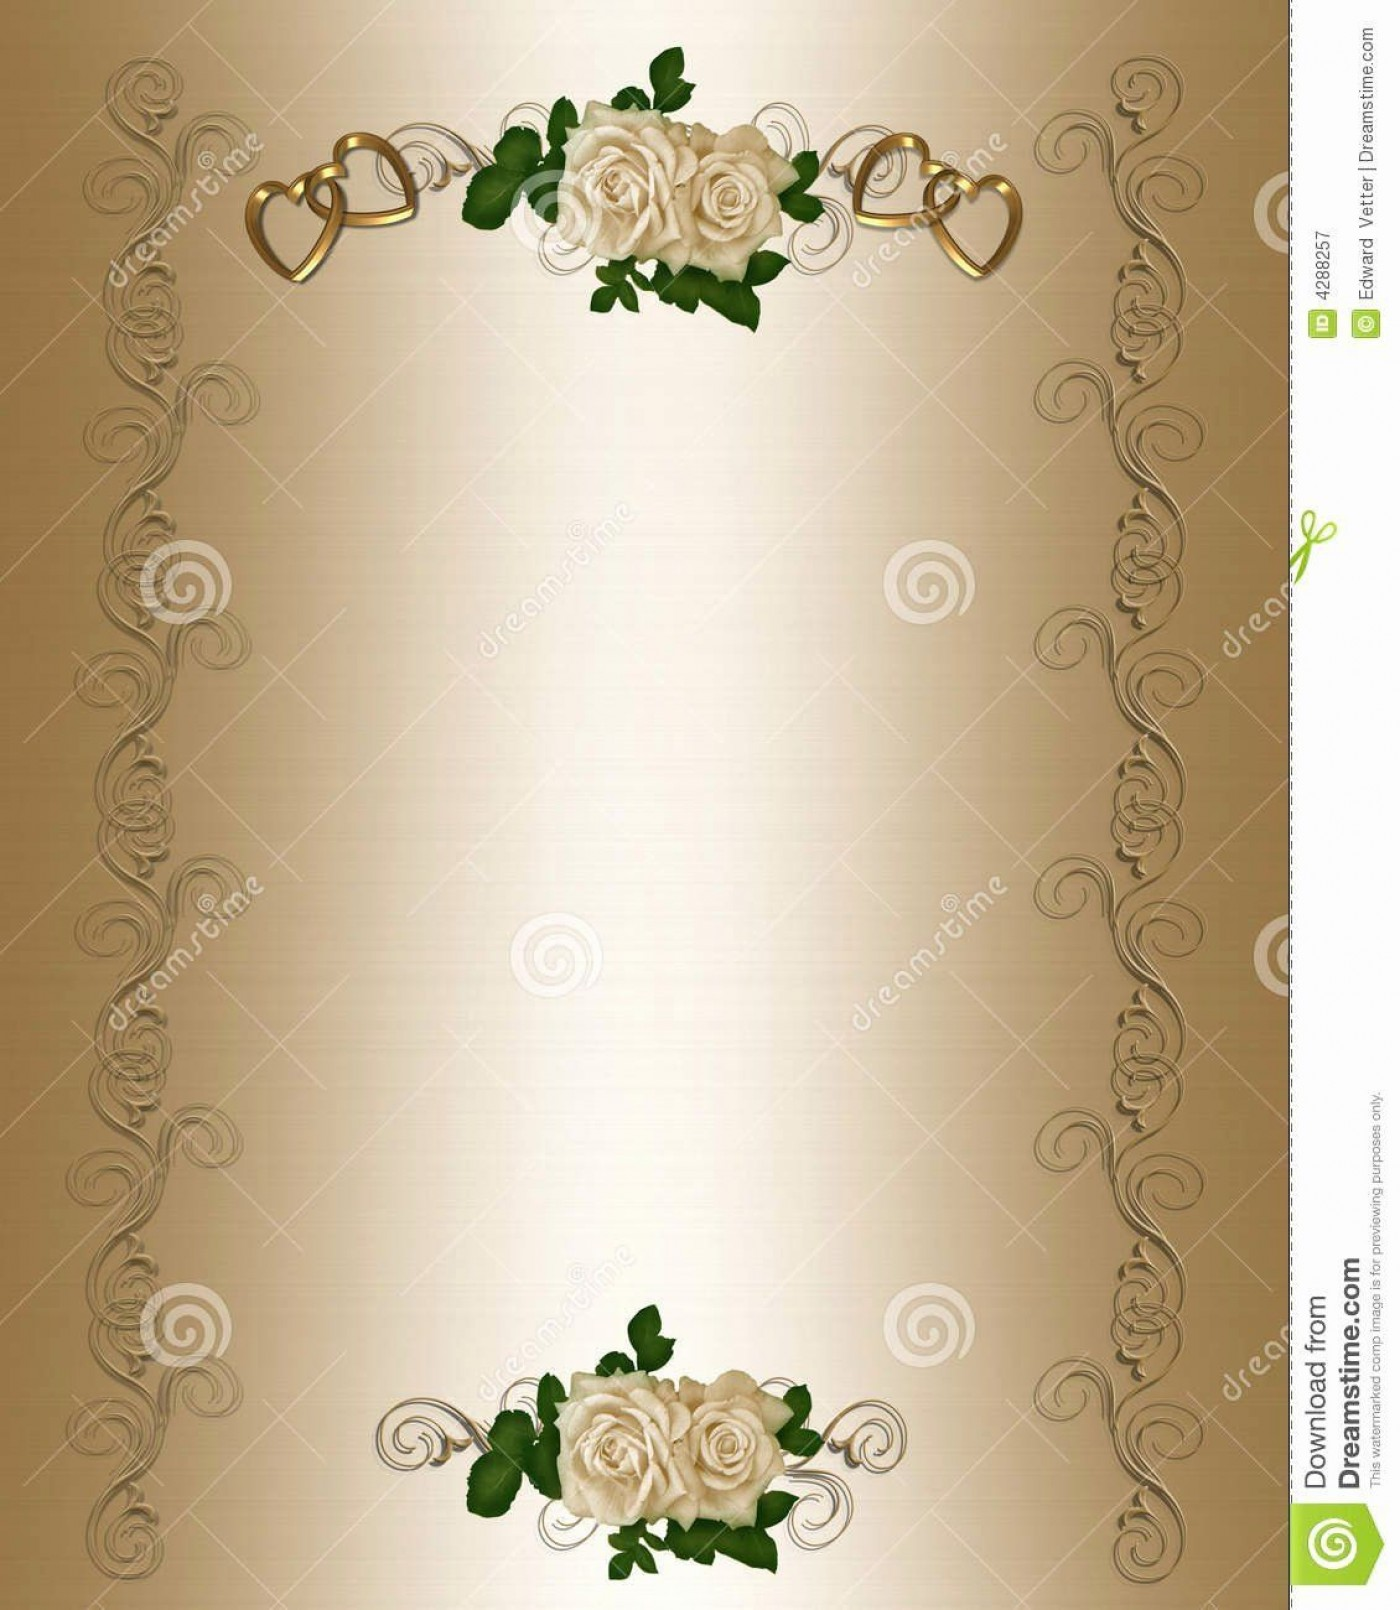 006 Excellent Free Download Invitation Card Template Inspiration  Wedding Design Software For Pc Psd1400